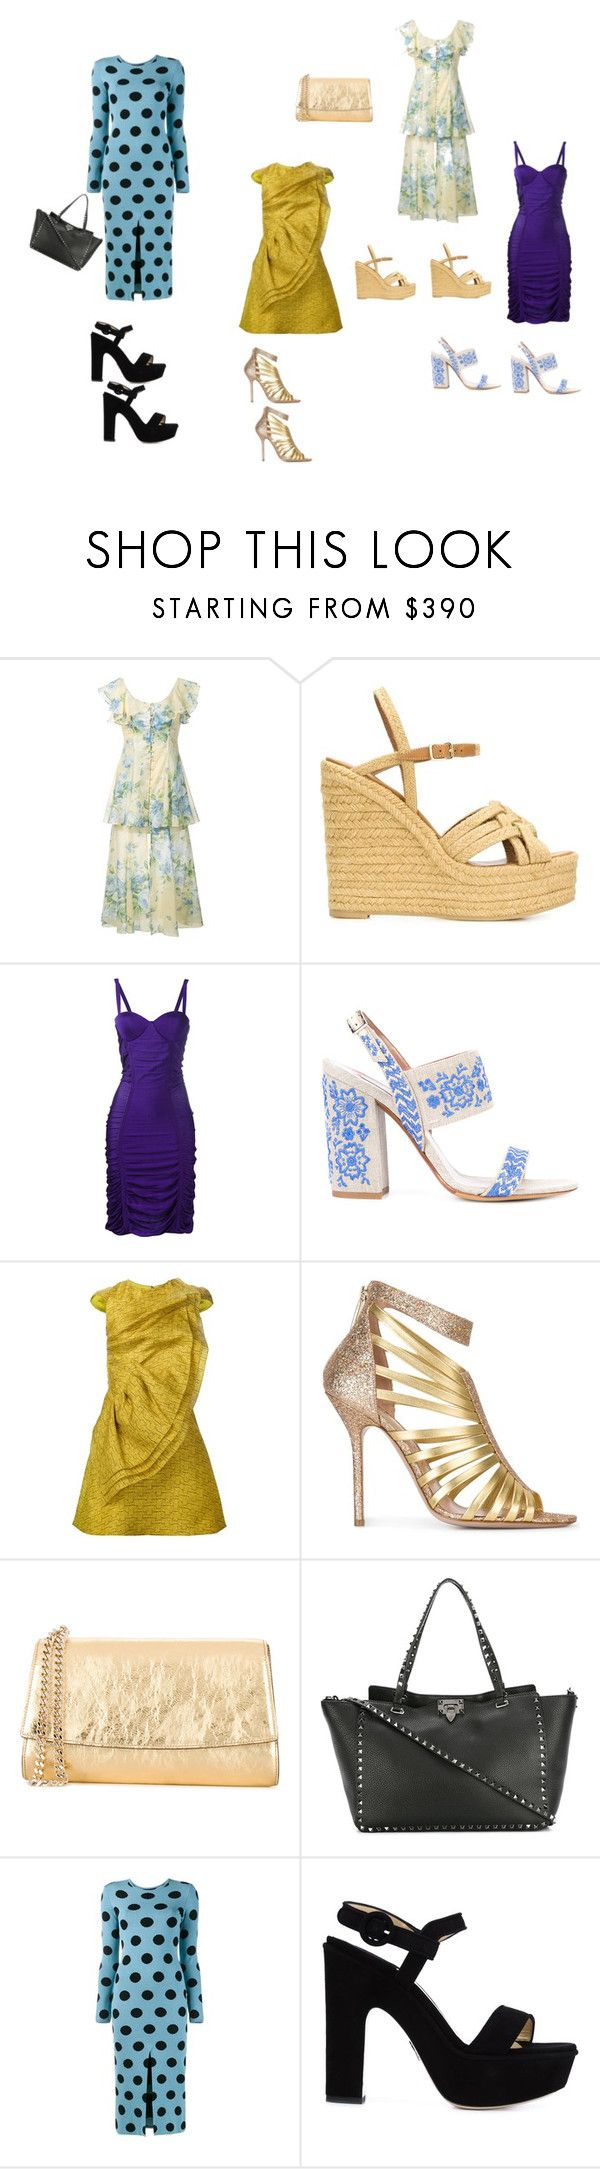 """We Love Fashion..**"" by yagna ❤ liked on Polyvore featuring Alice McCall, Yves Saint Laurent, Balmain, Tabitha Simmons, Christian Siriano, Aperlaï, Sergio Rossi, Valentino, Natasha Zinko and Paul Andrew"